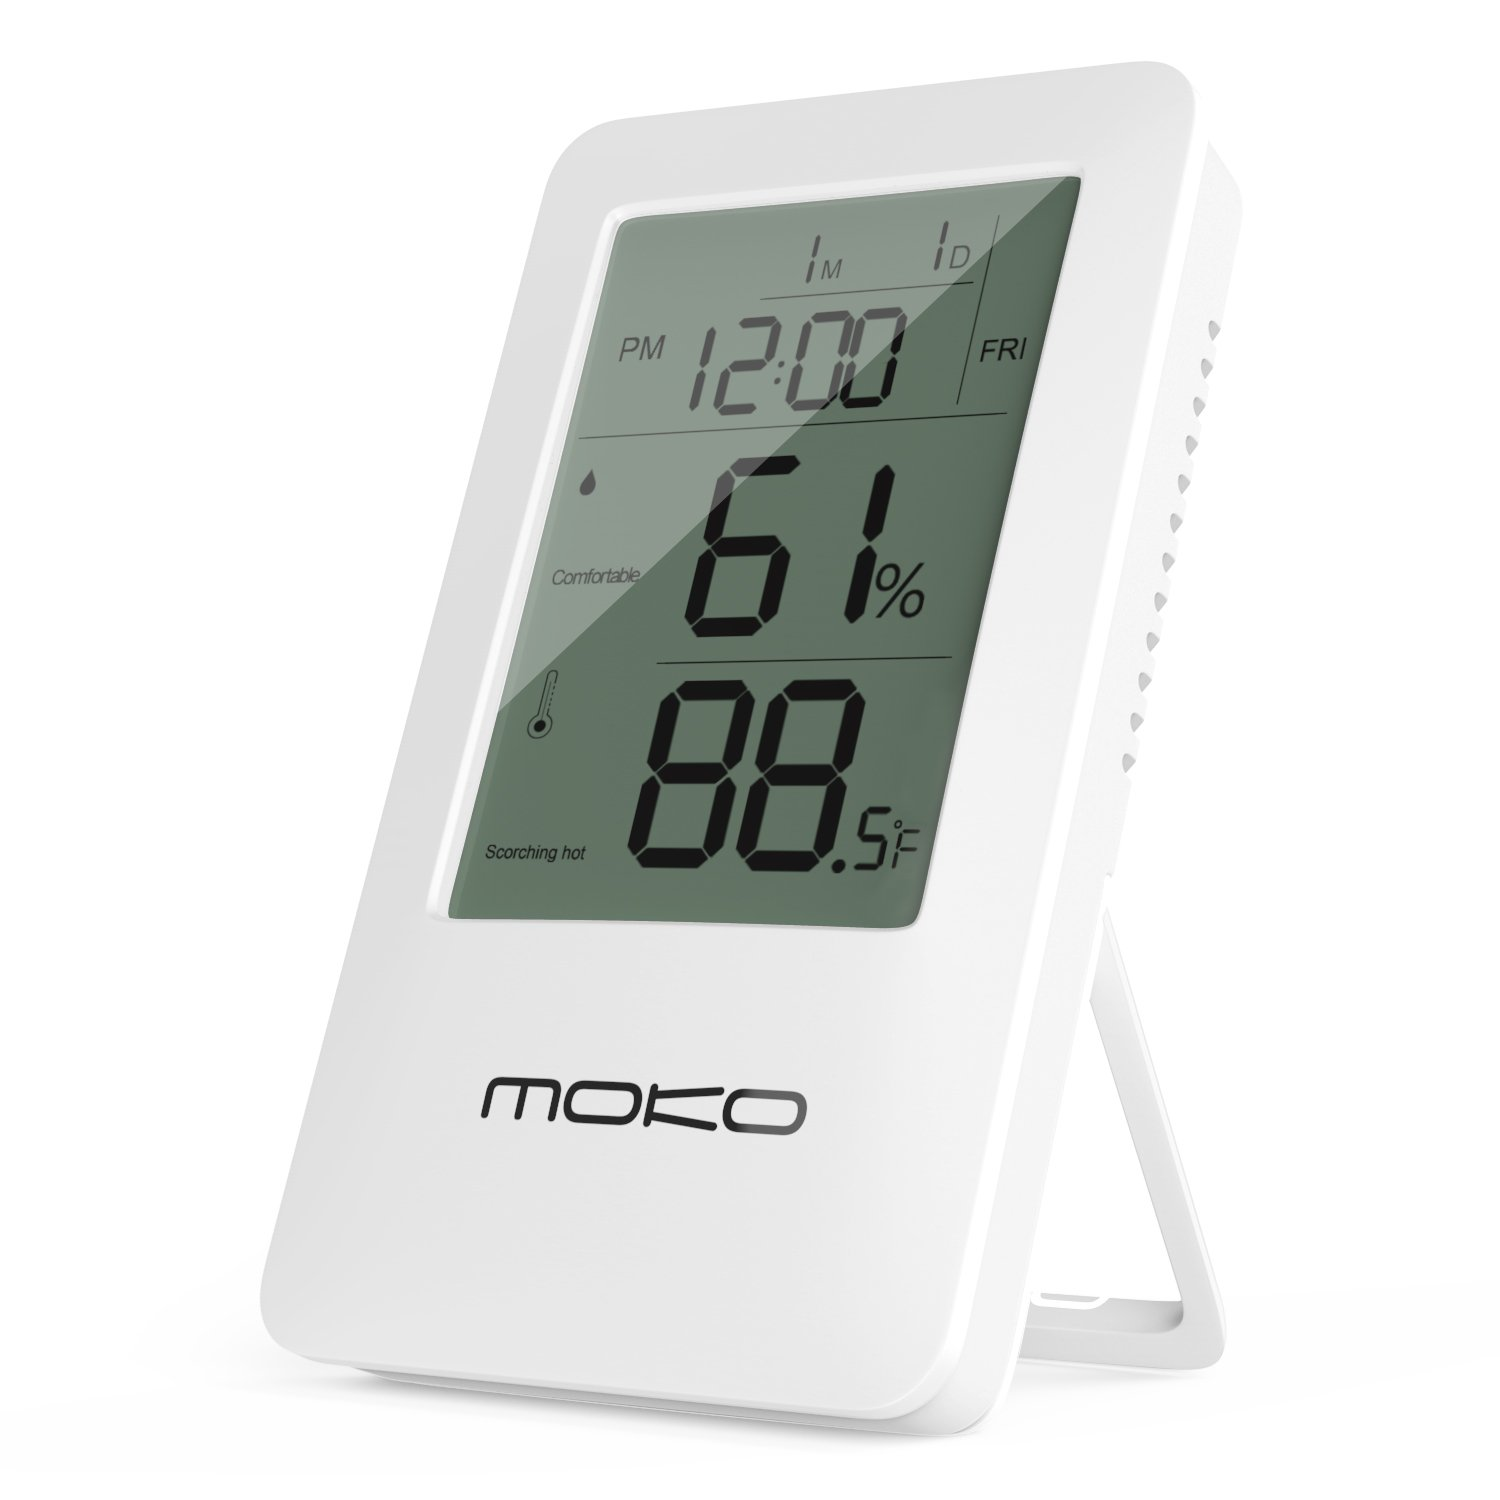 MoKo Multifunctional 2-in-1 Wireless Indoor Temperature Meter Humidity Monitor Sensor Electronic LCD Screen with Time Display and Built-in Backlight Alarm Clock Digital Hygrometer Thermometer WHITE